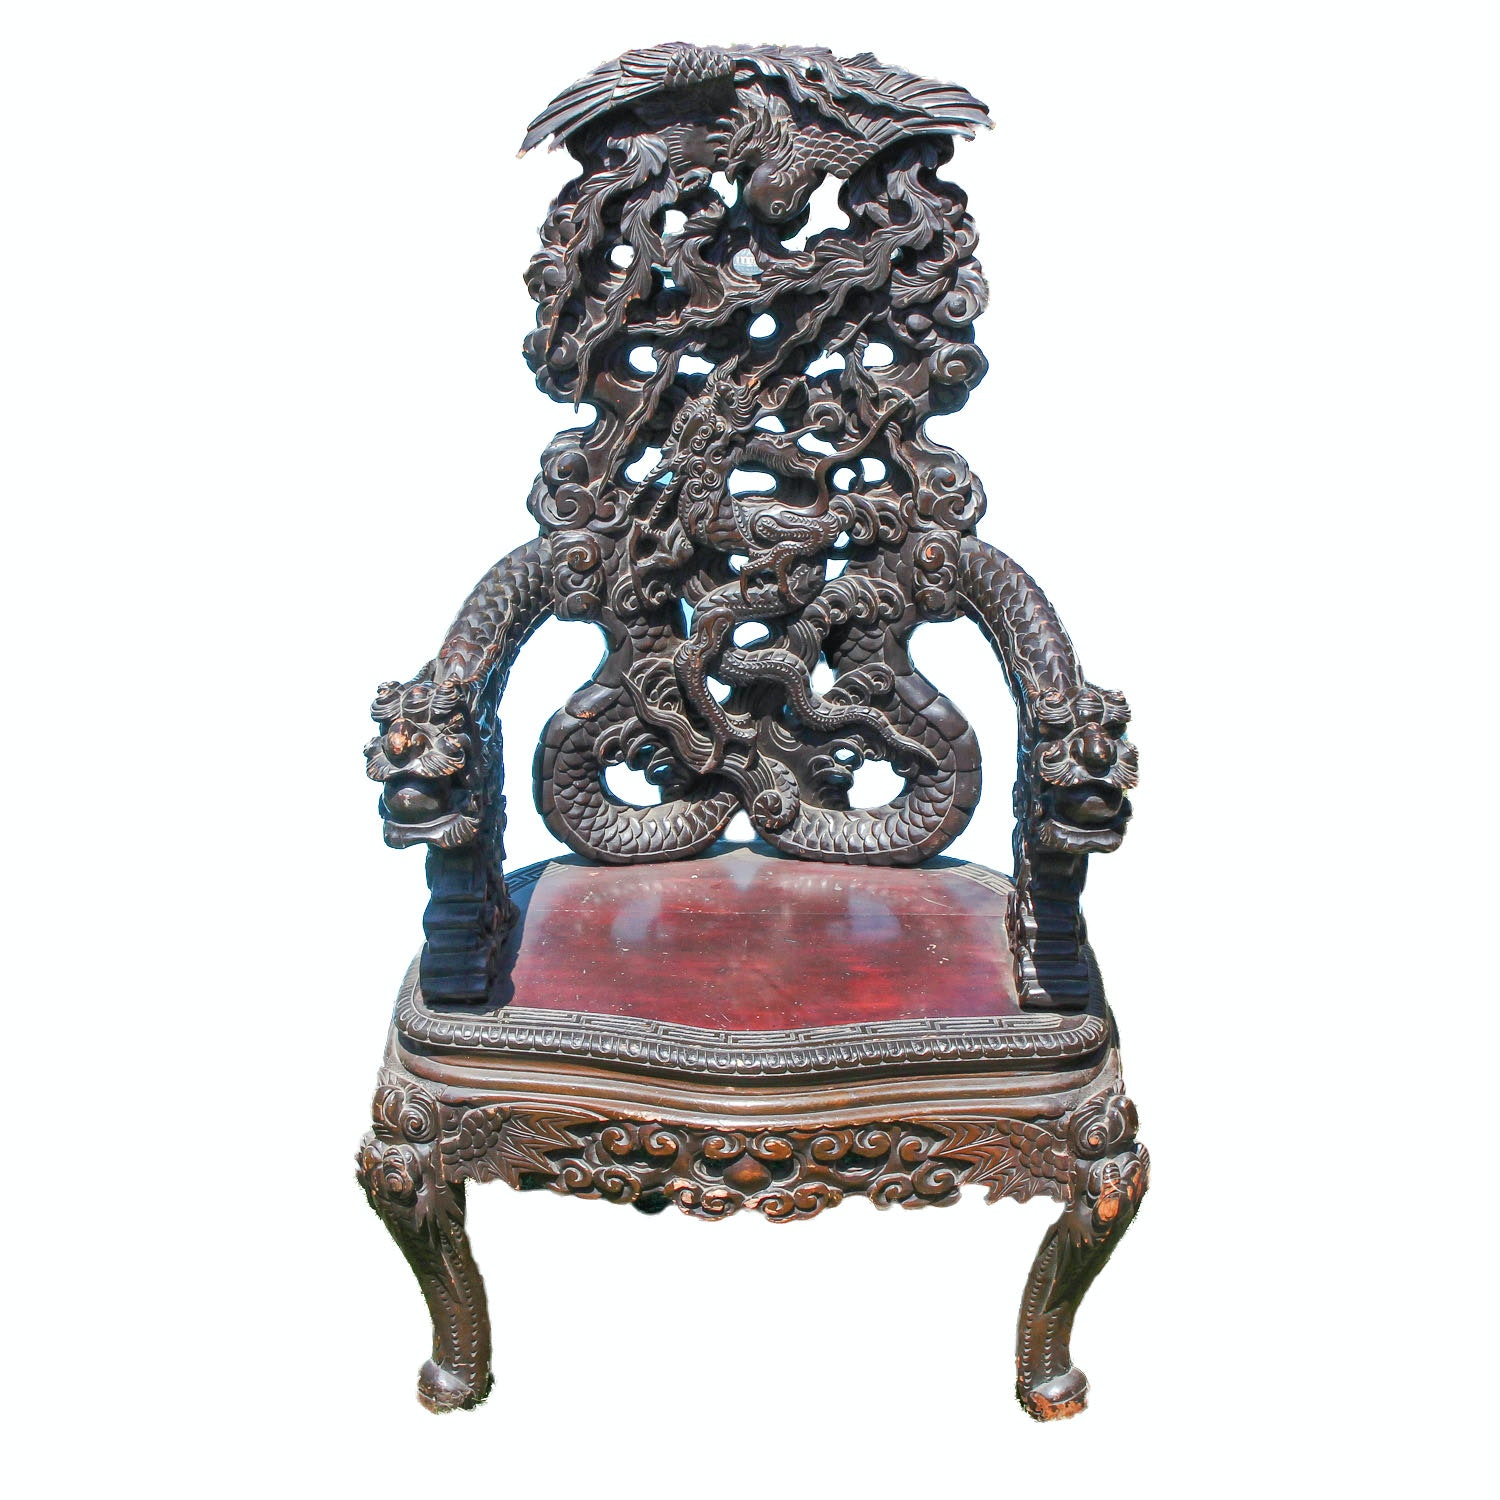 Vintage Wood Chinese Chair with Ornate Carvings